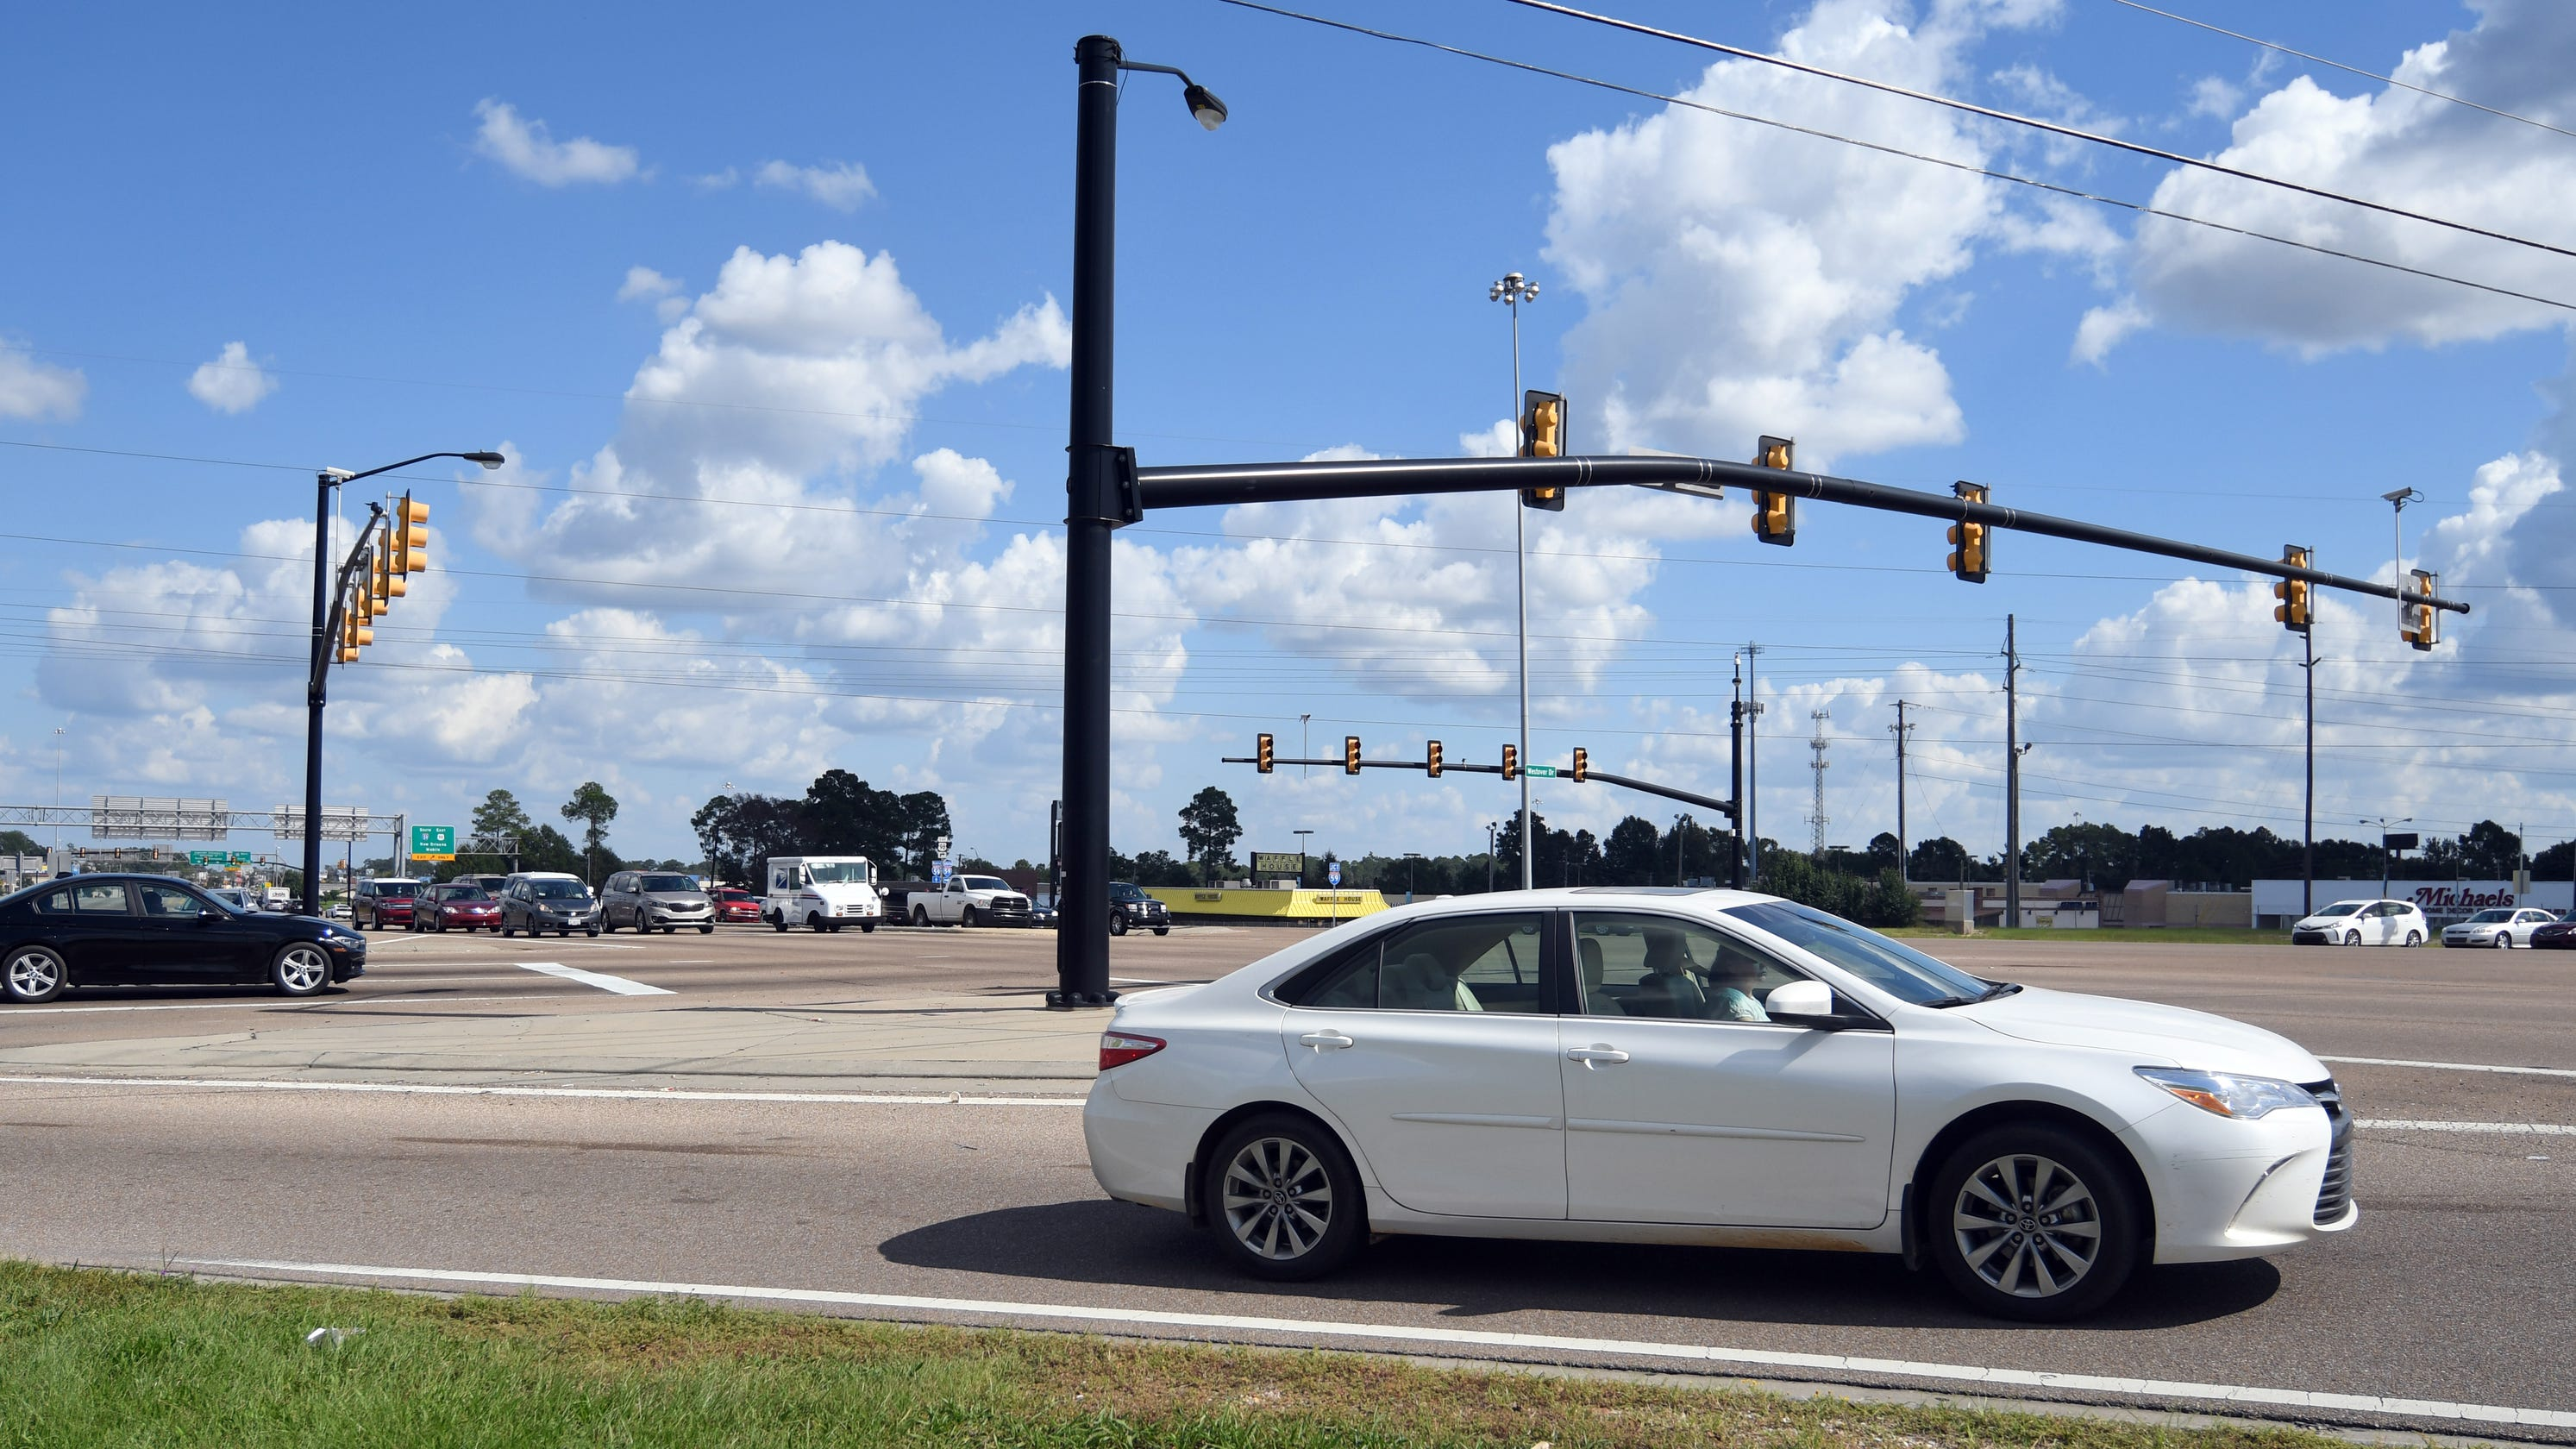 Hardy Street is one of the most dangerous intersections in Hattiesburg